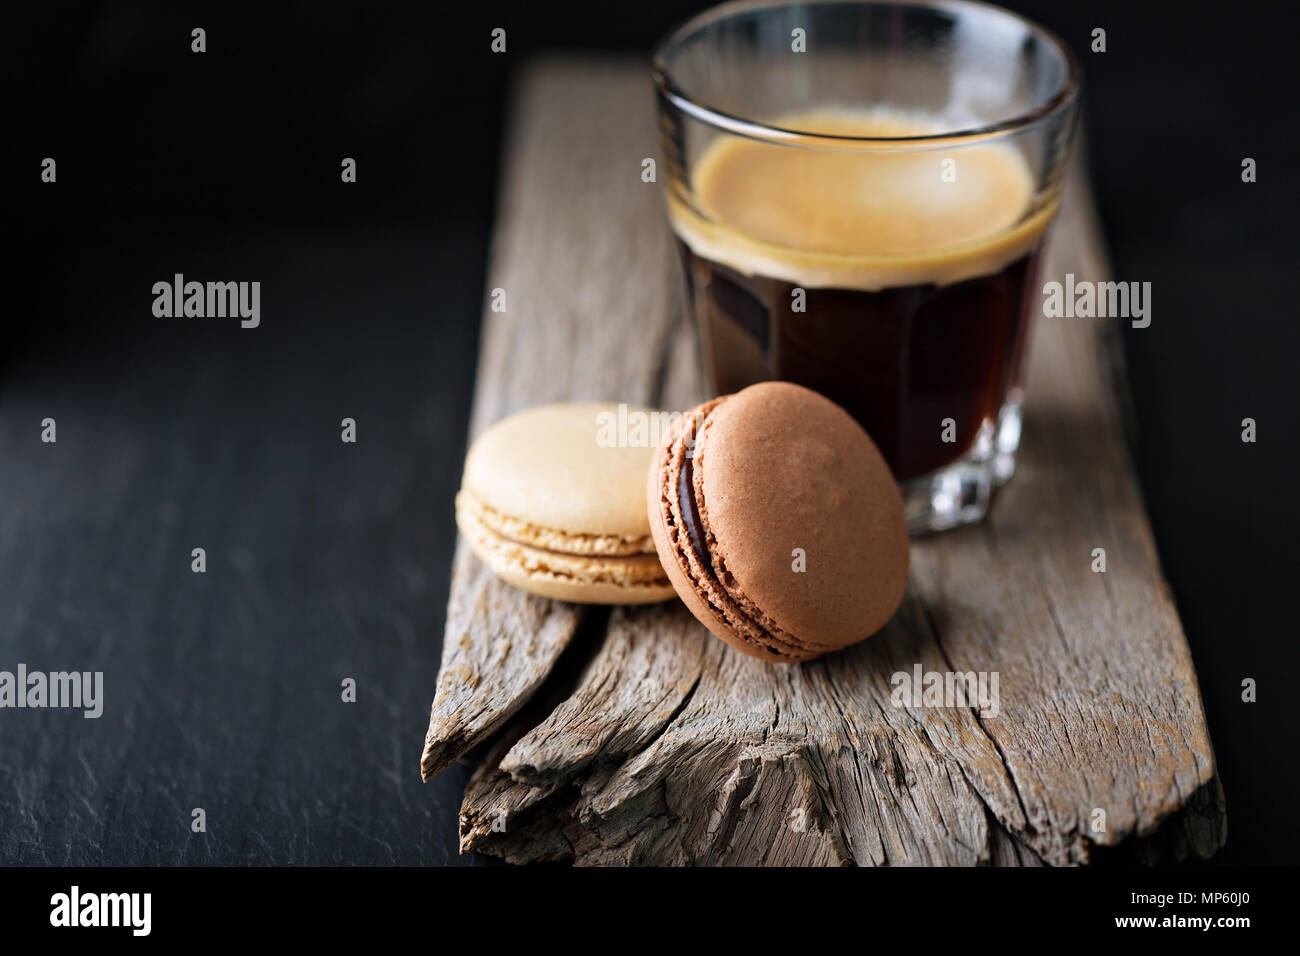 Chocolate and coffee macarons - Stock Image